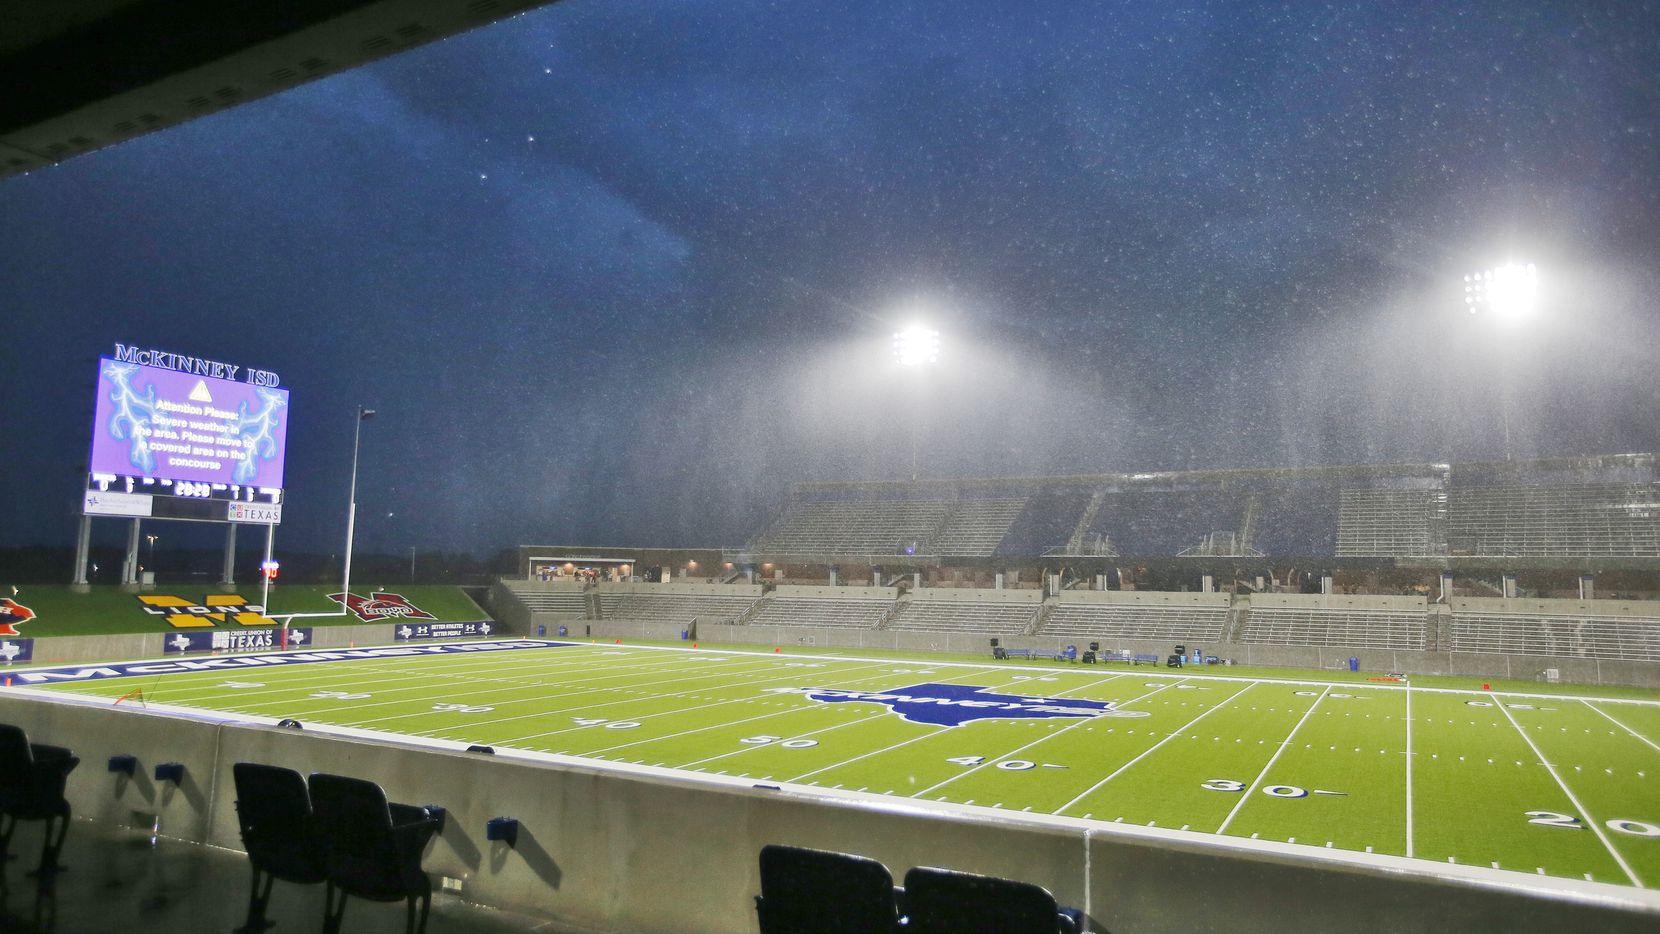 Sheets of rain came down last month during a weather delay holding up the start of a high school football game between Plano East and McKinney Boyd at McKinney ISD Stadium.